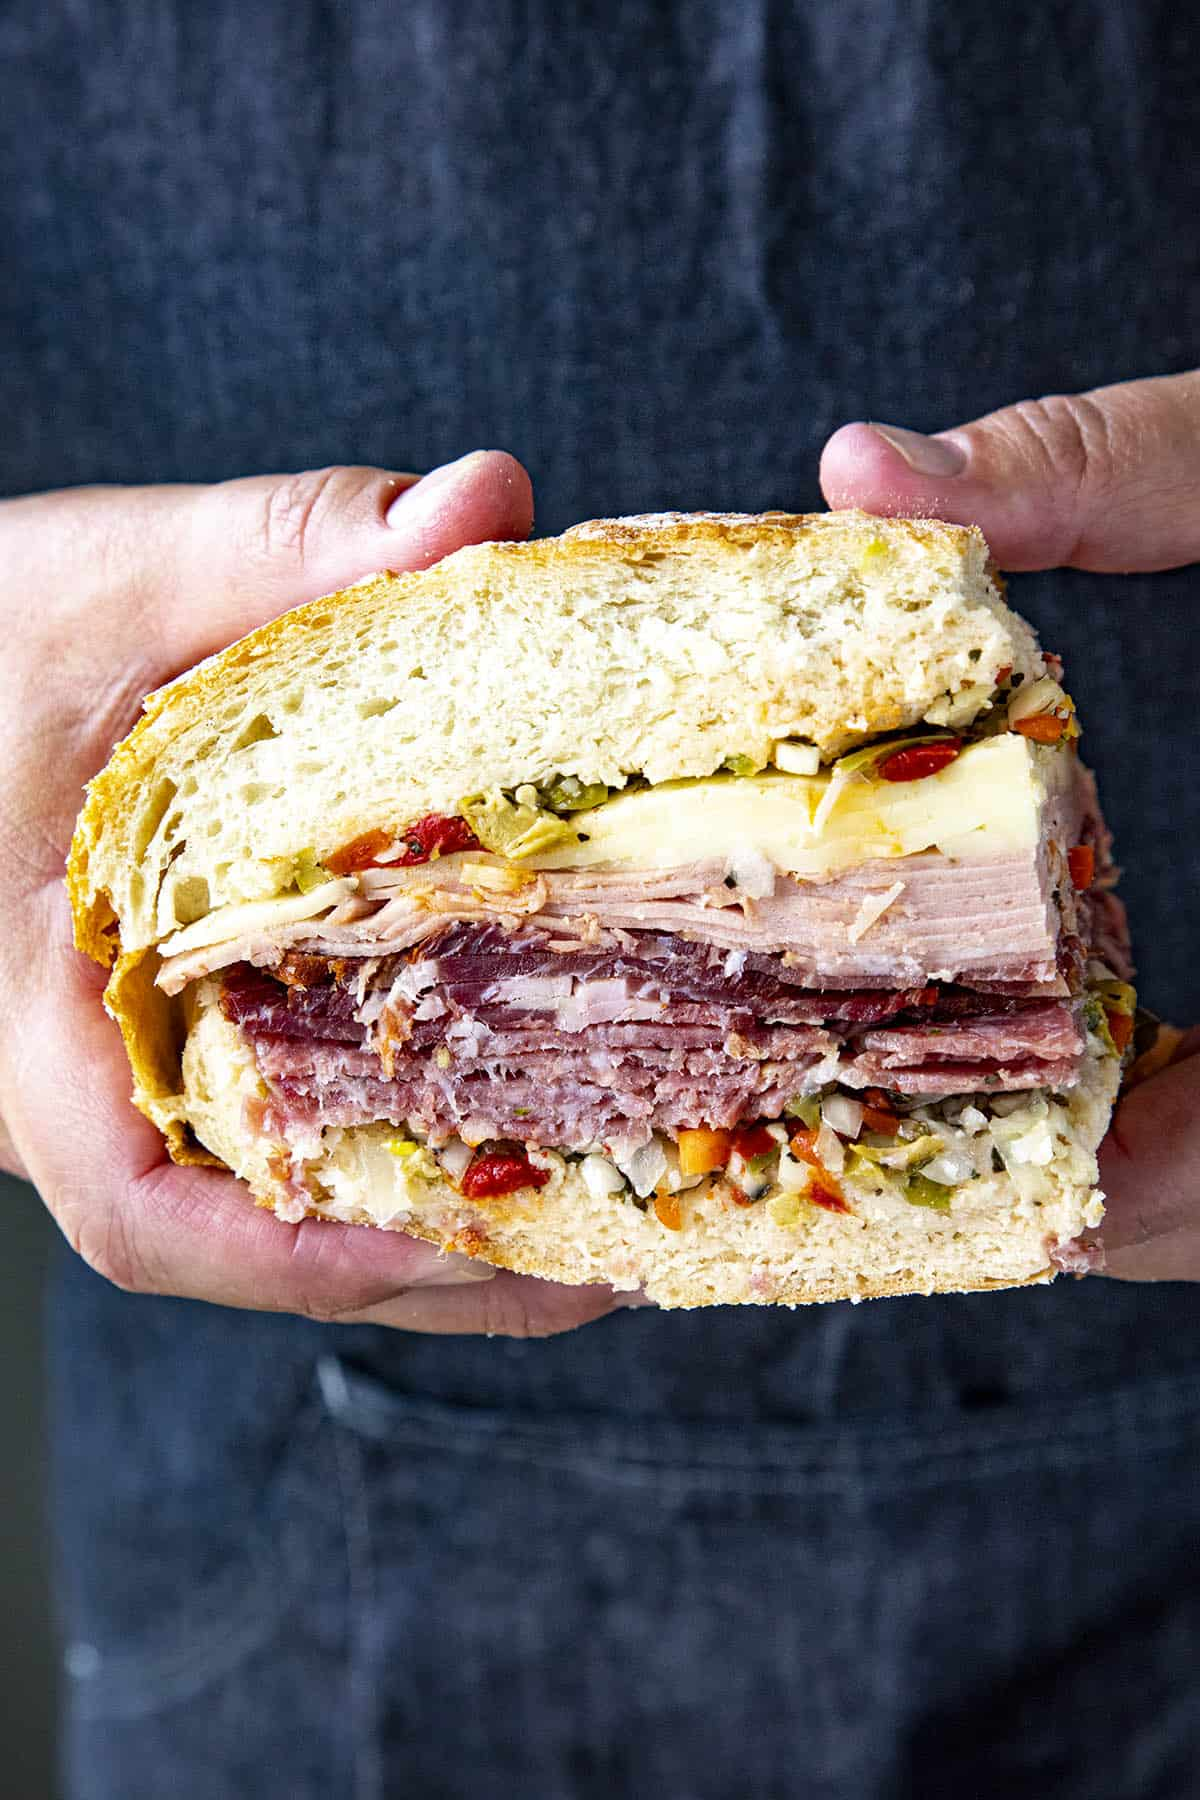 Mike holding a slice of a Muffaletta sandwich